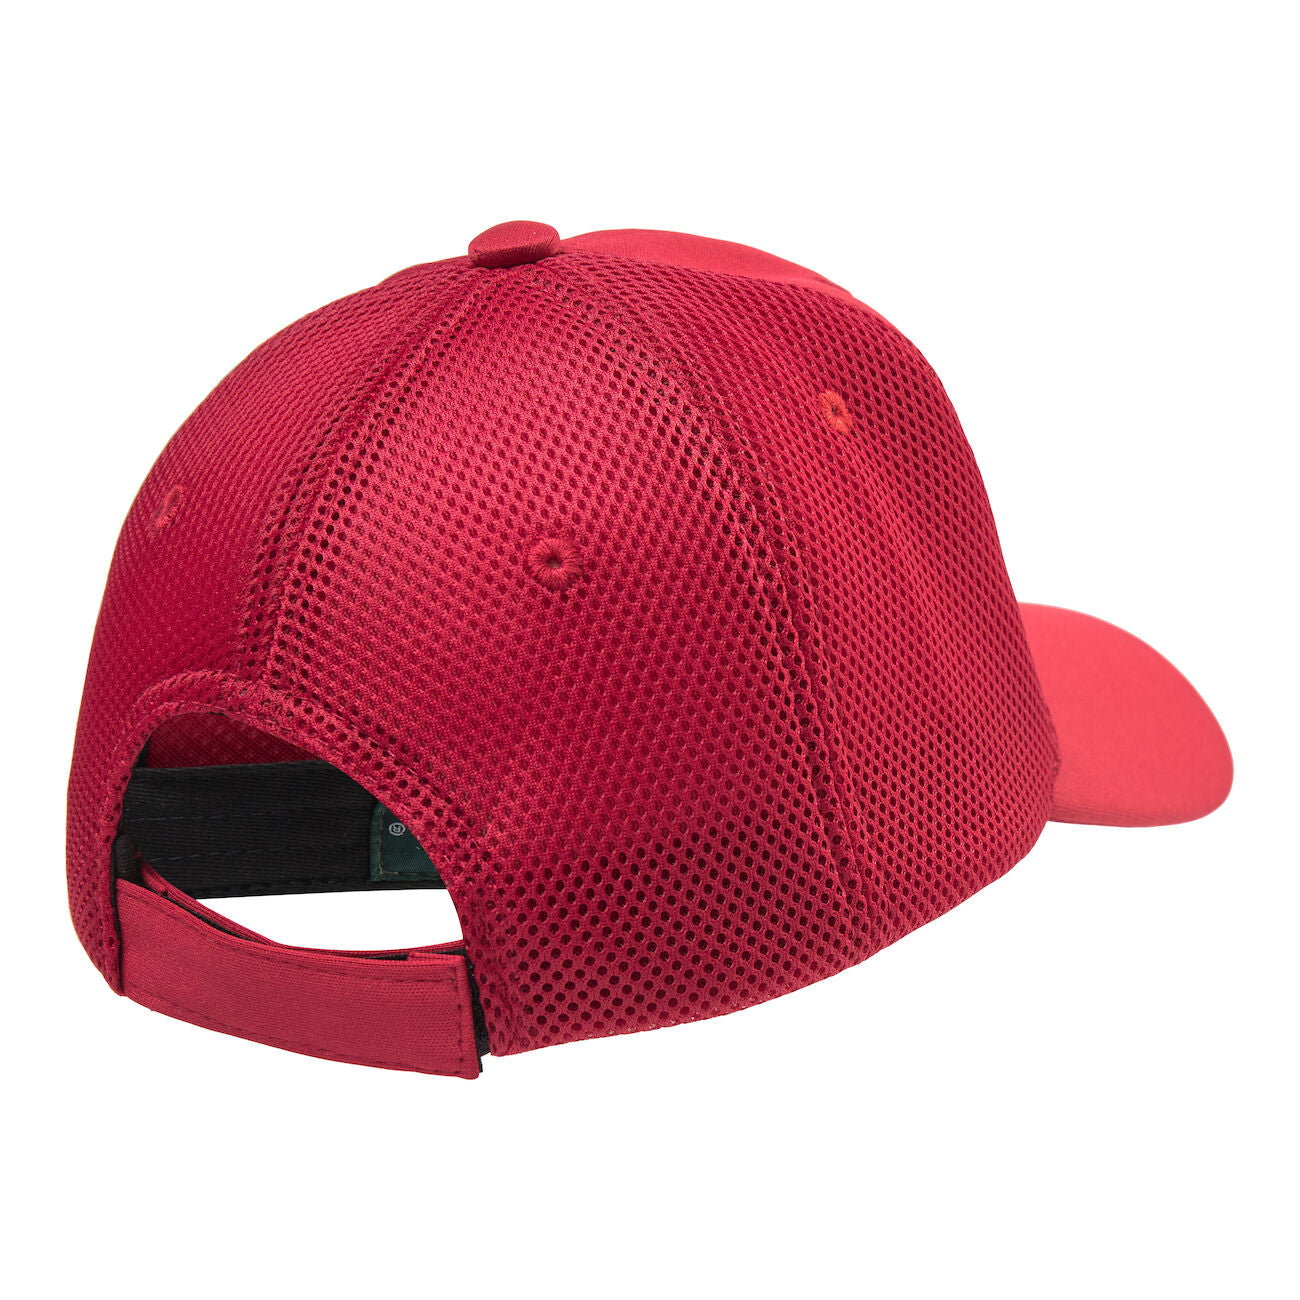 Deerhunter Mesh Cap - Red - One Size